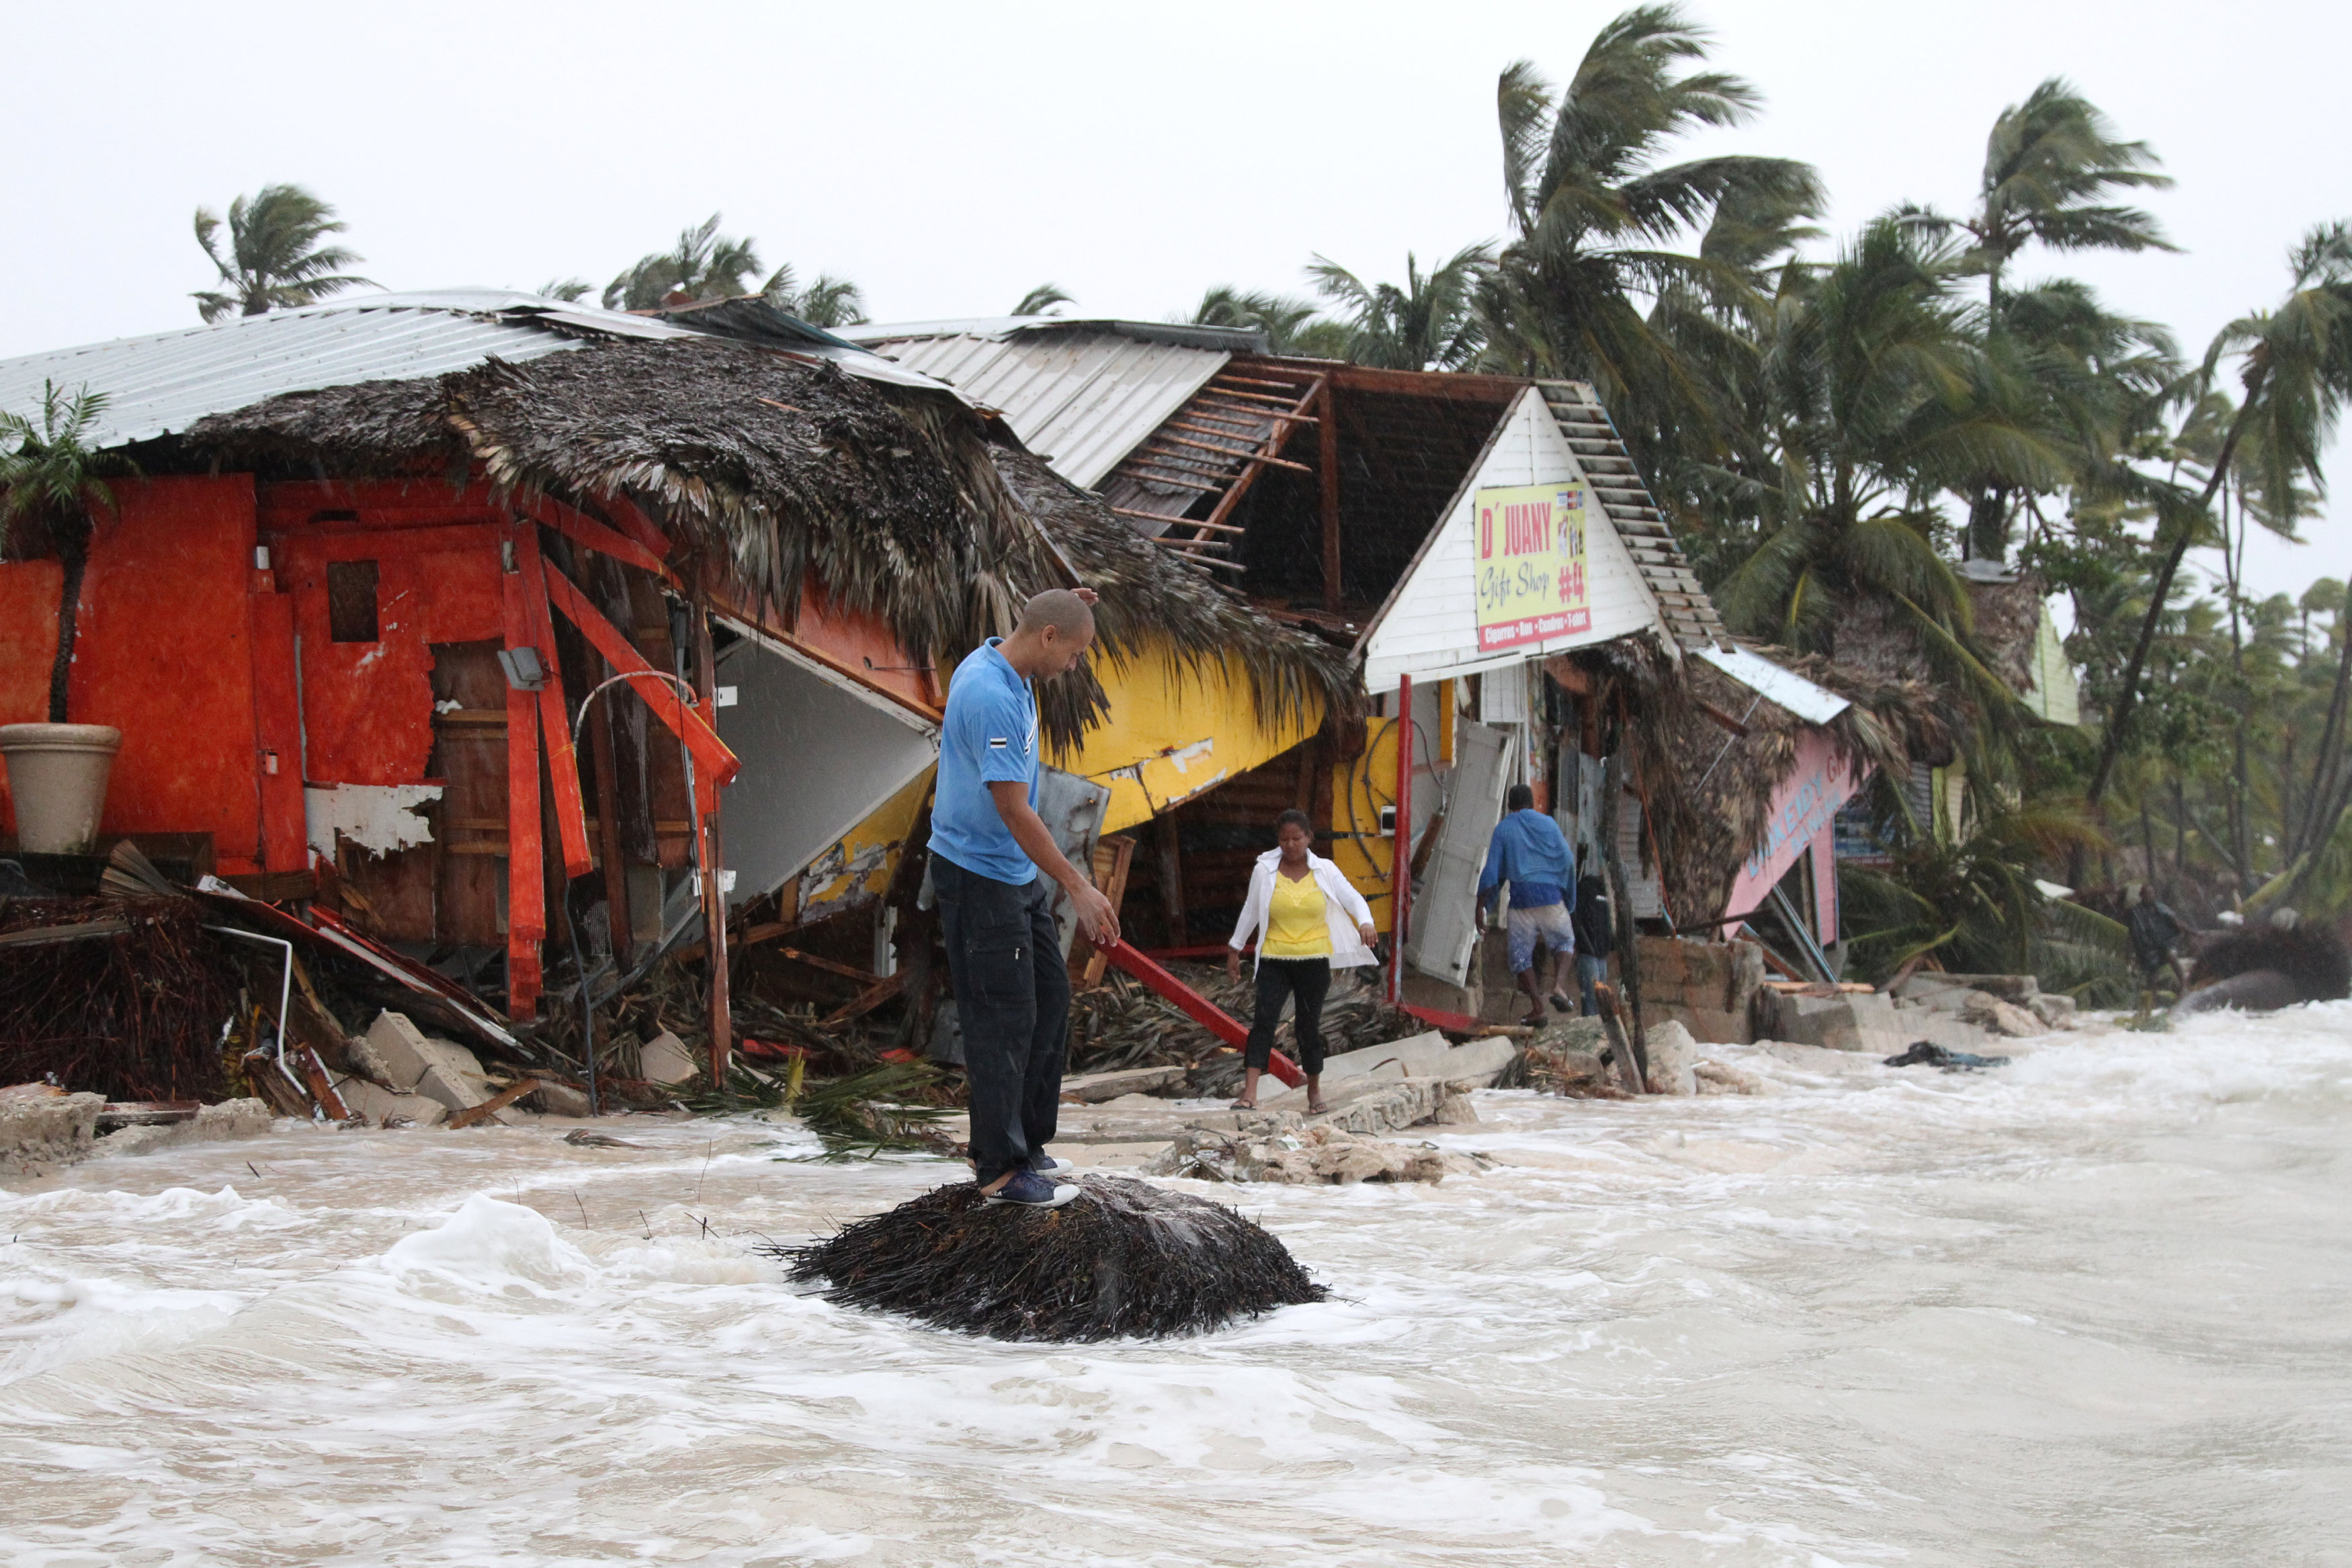 People walk among debris on the seashore in the aftermath of Hurricane Maria in Punta Cana, Dominican Republic, September 21, 2017. REUTERS/Ricardo Rojas